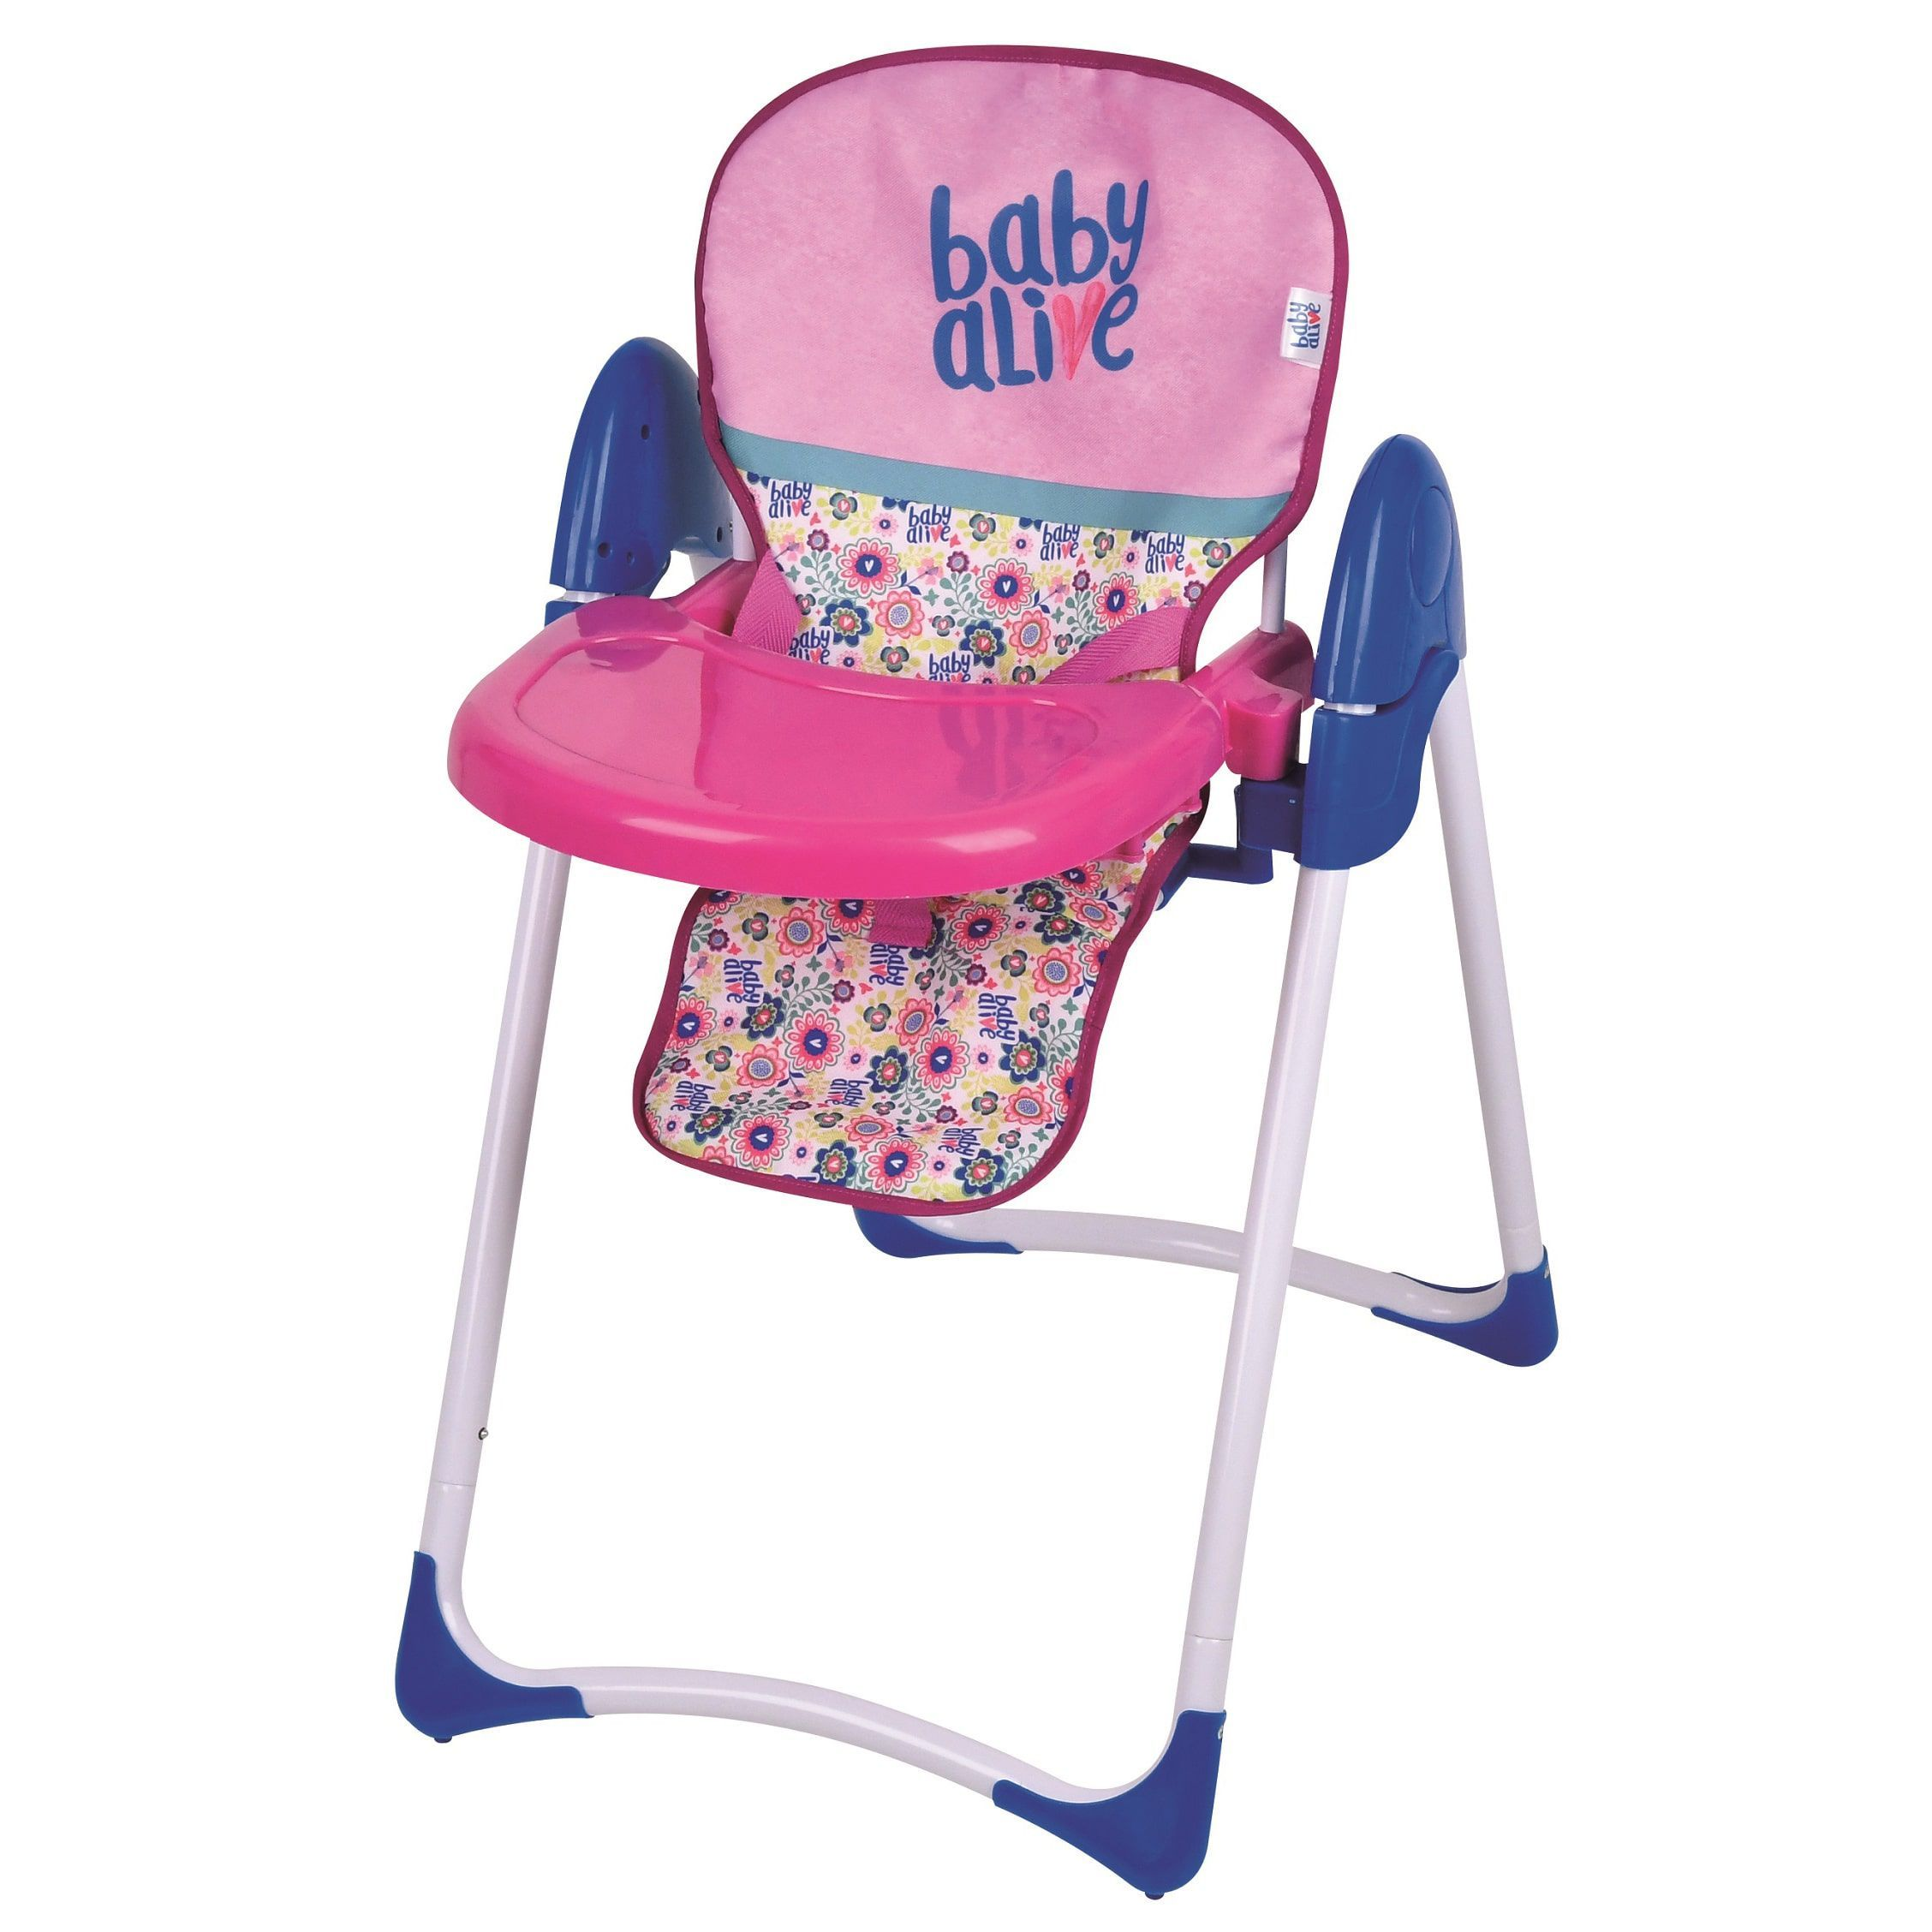 Shop With Me Stroller by American Plastic Toys Baby doll